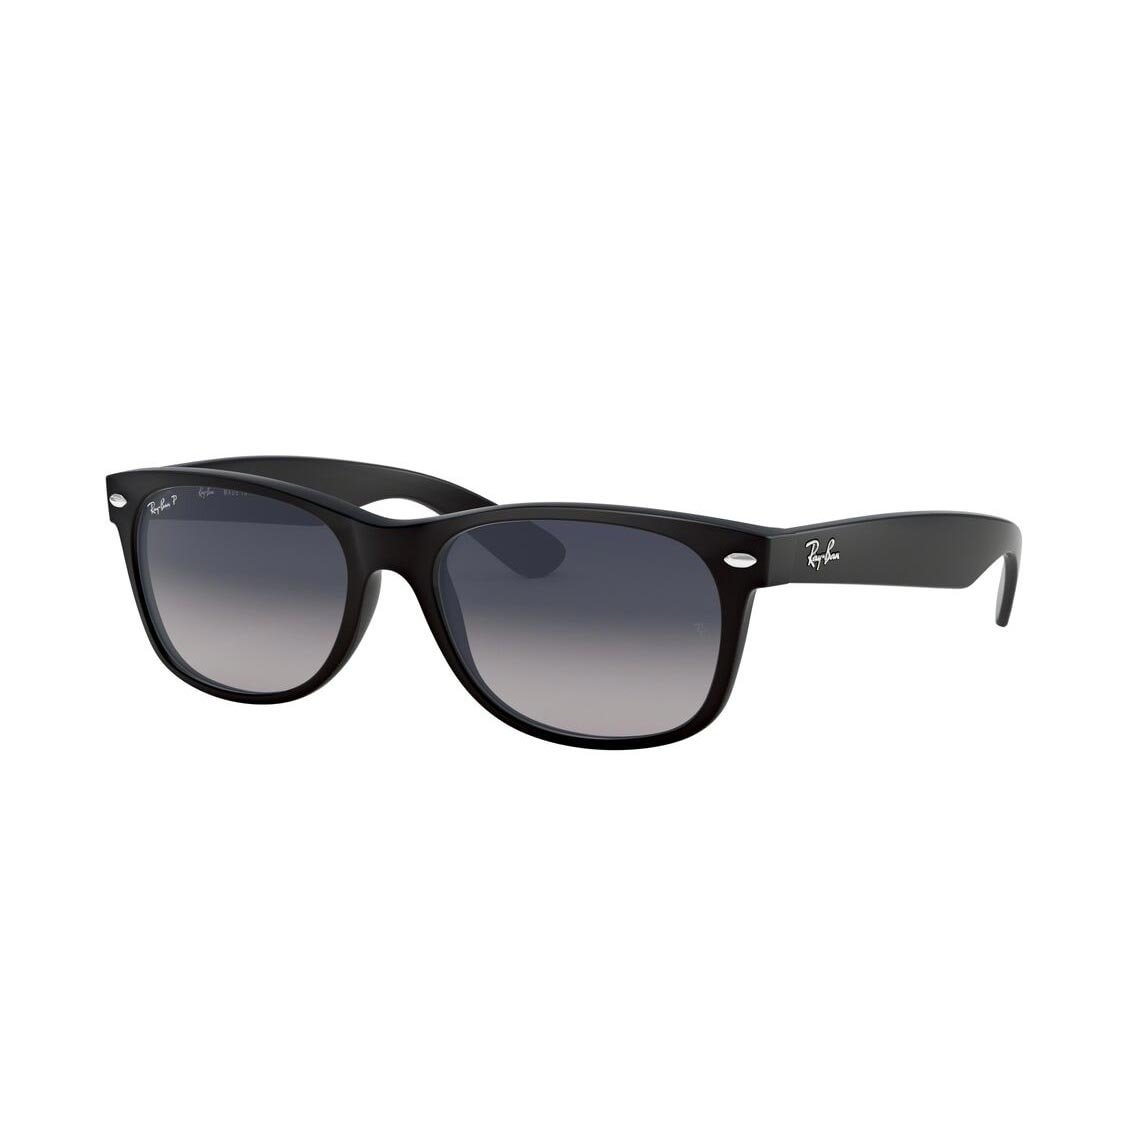 Ray-Ban New Wayfarer RB2132 601S78 52